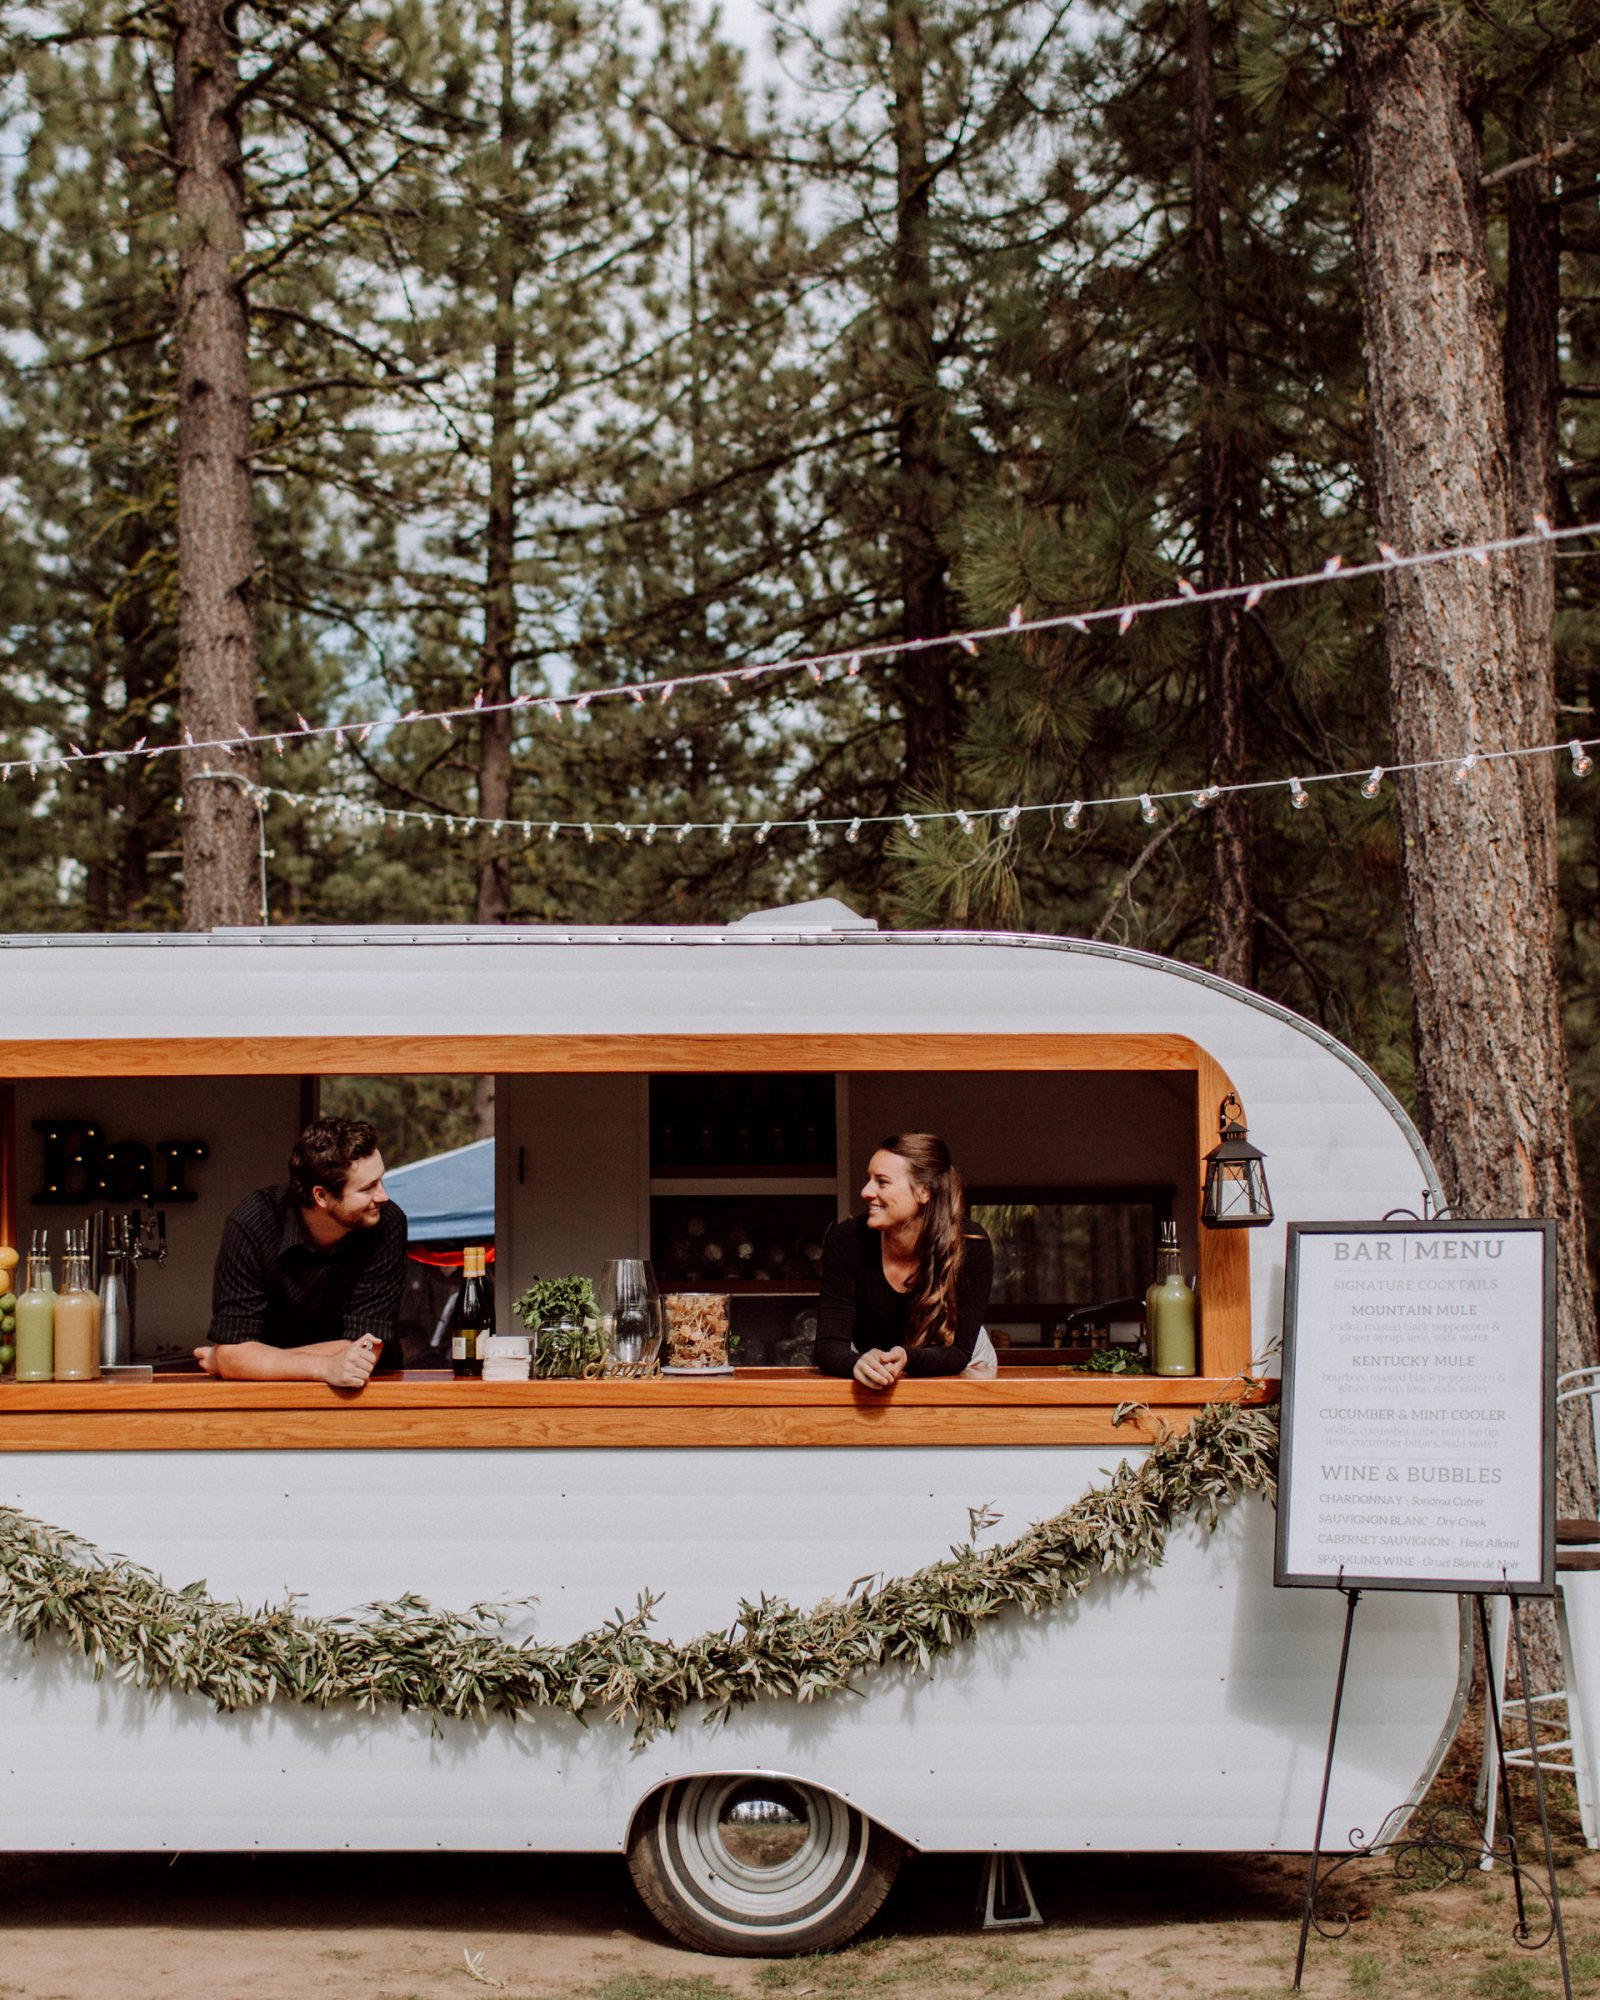 Court & Kelsey's mobile bar parked in trees